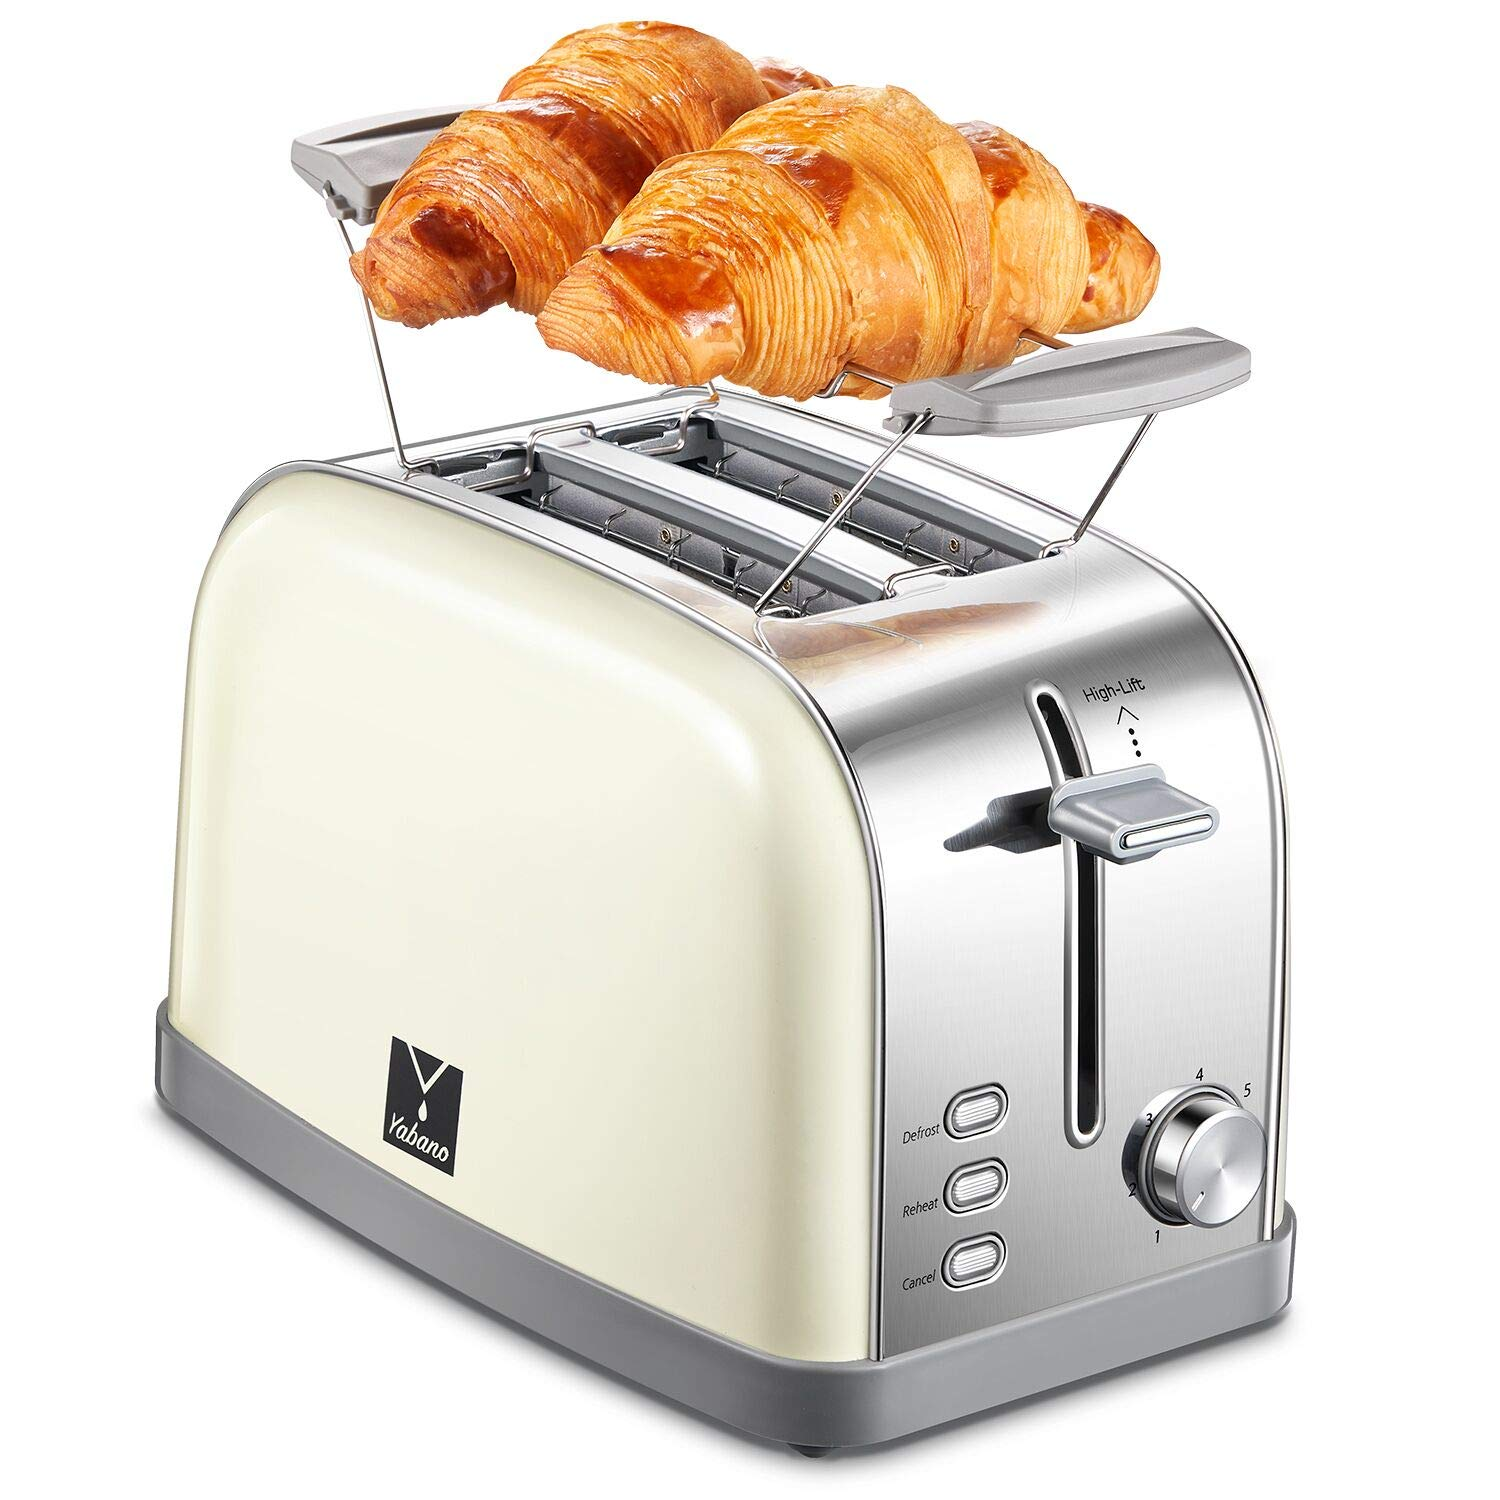 Yabano 2 Slice Toaster, Retro Bagel Toaster Toaster with 7 Bread Shade Settings, 2 Extra Wide Slots, Defrost/Bagel/Cancel Function, Removable Crumb Tray, Stainless Steel Toaster, Cream white